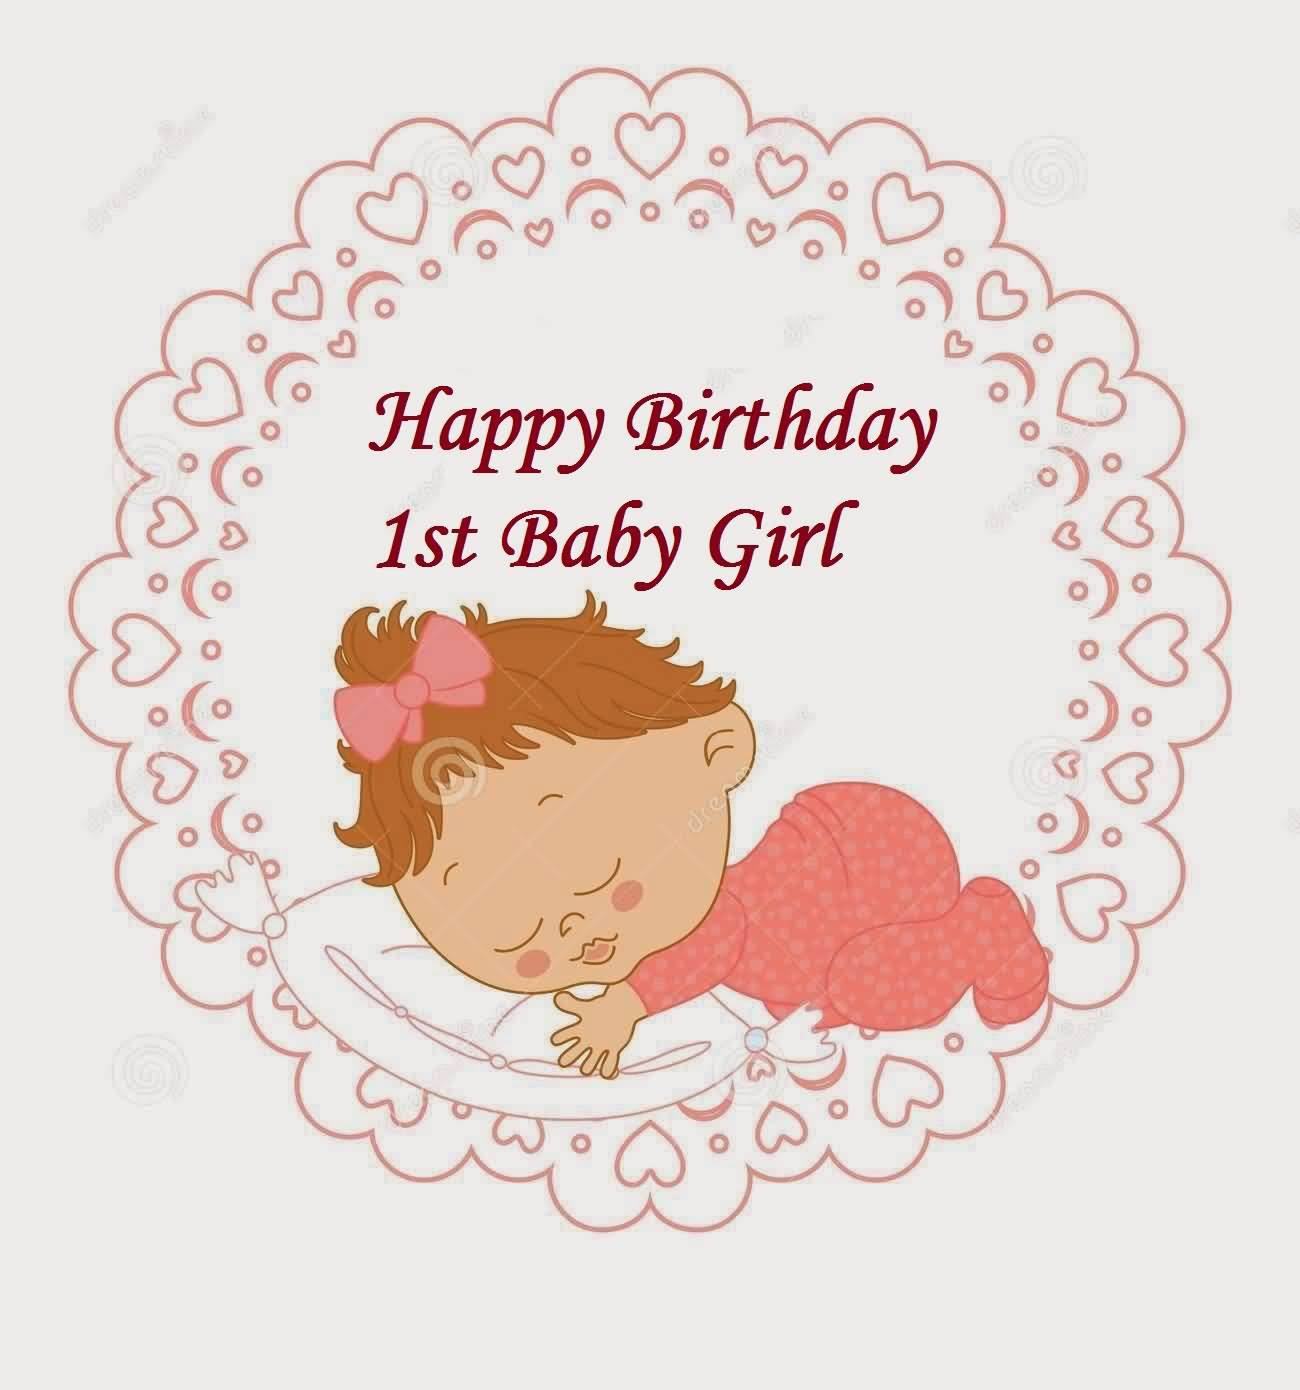 33 Cute Baby Girl Birthday Wishes Picture Image Happy Birthday Wishes To My Baby